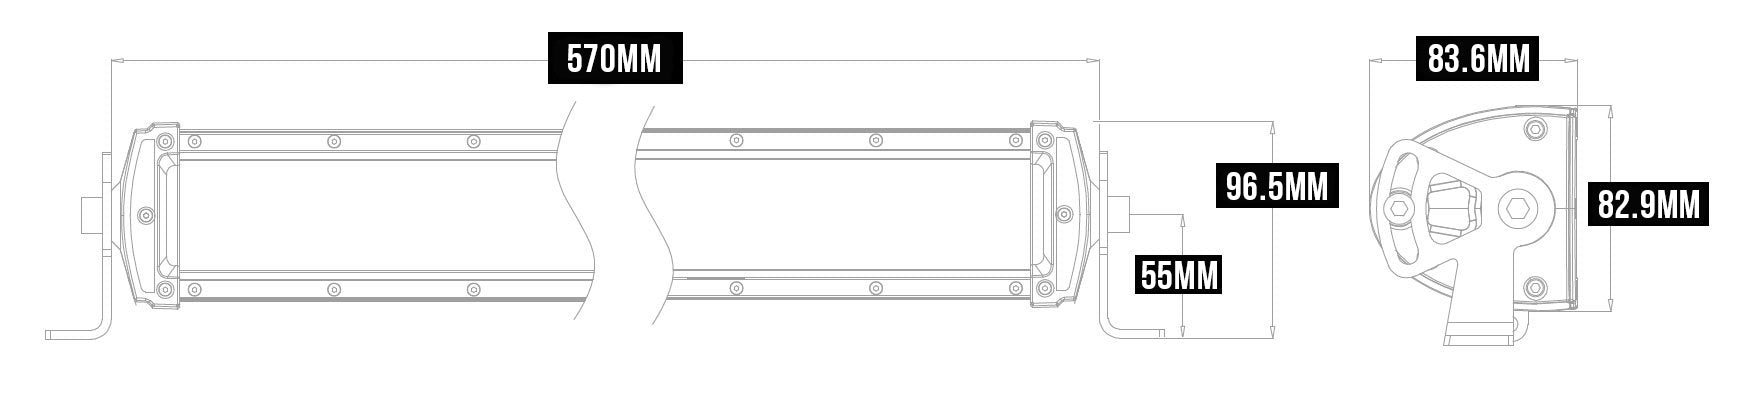 Double Row LED Light Bar Dimension Size